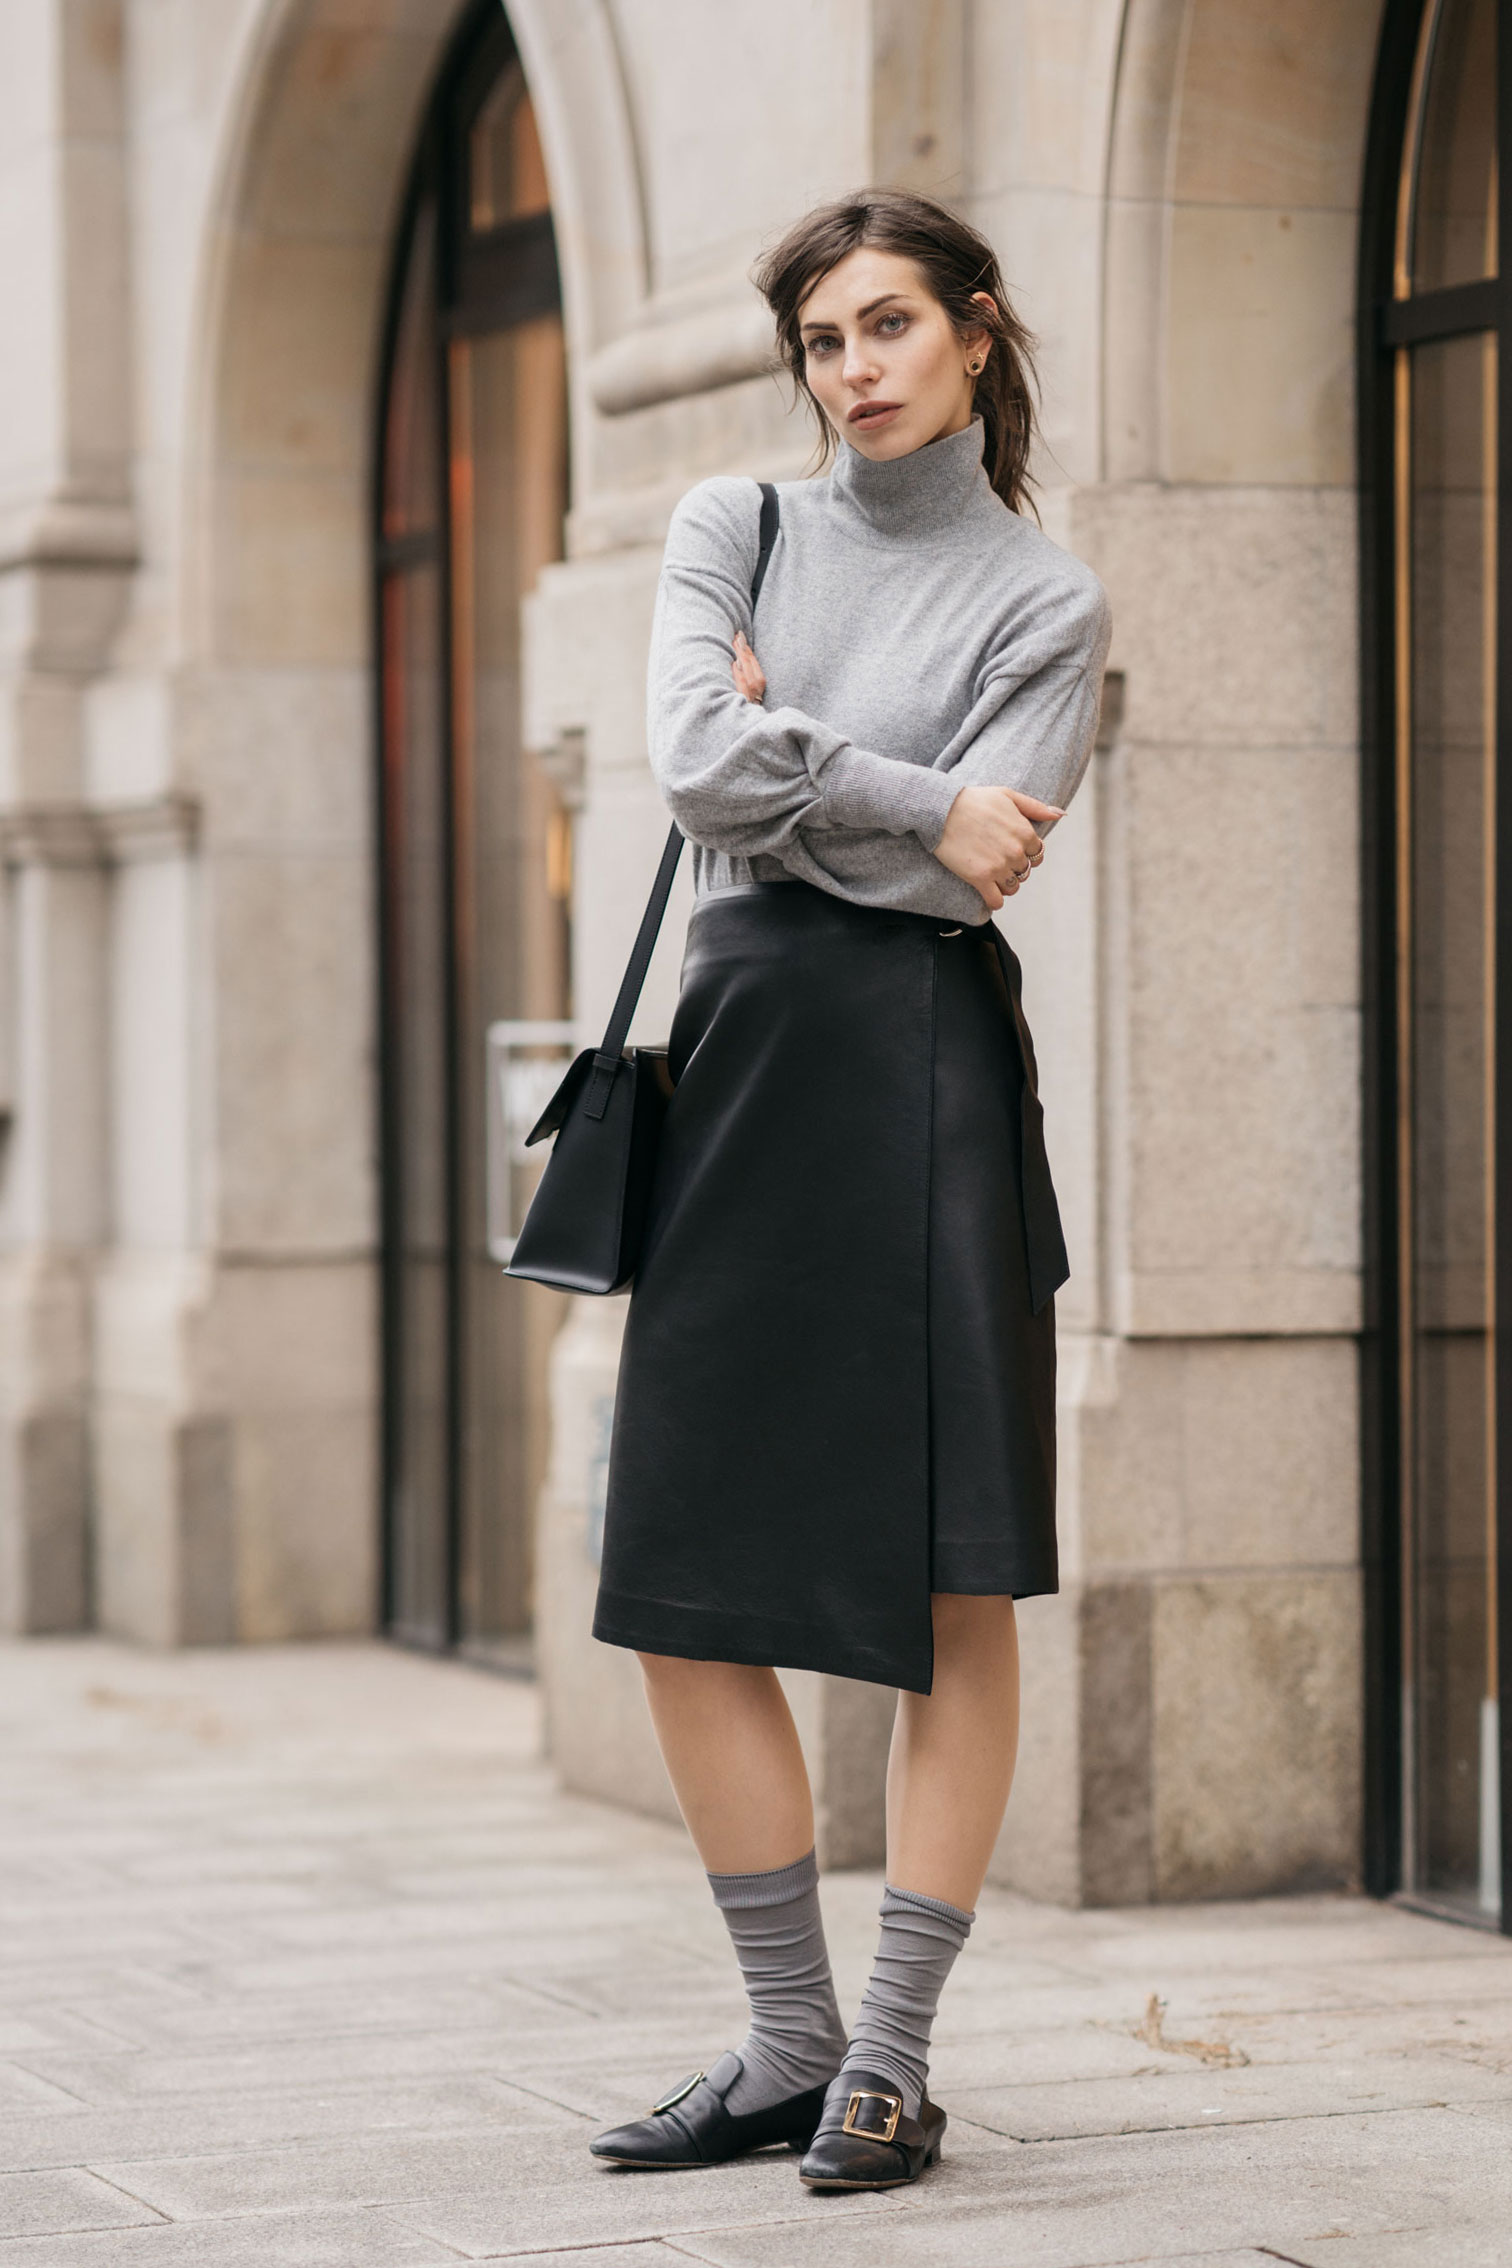 Street Style in Berlin | Fashion | Mode | Inspiration | Style: edgy, cool, casual | Parisienne | French Chic